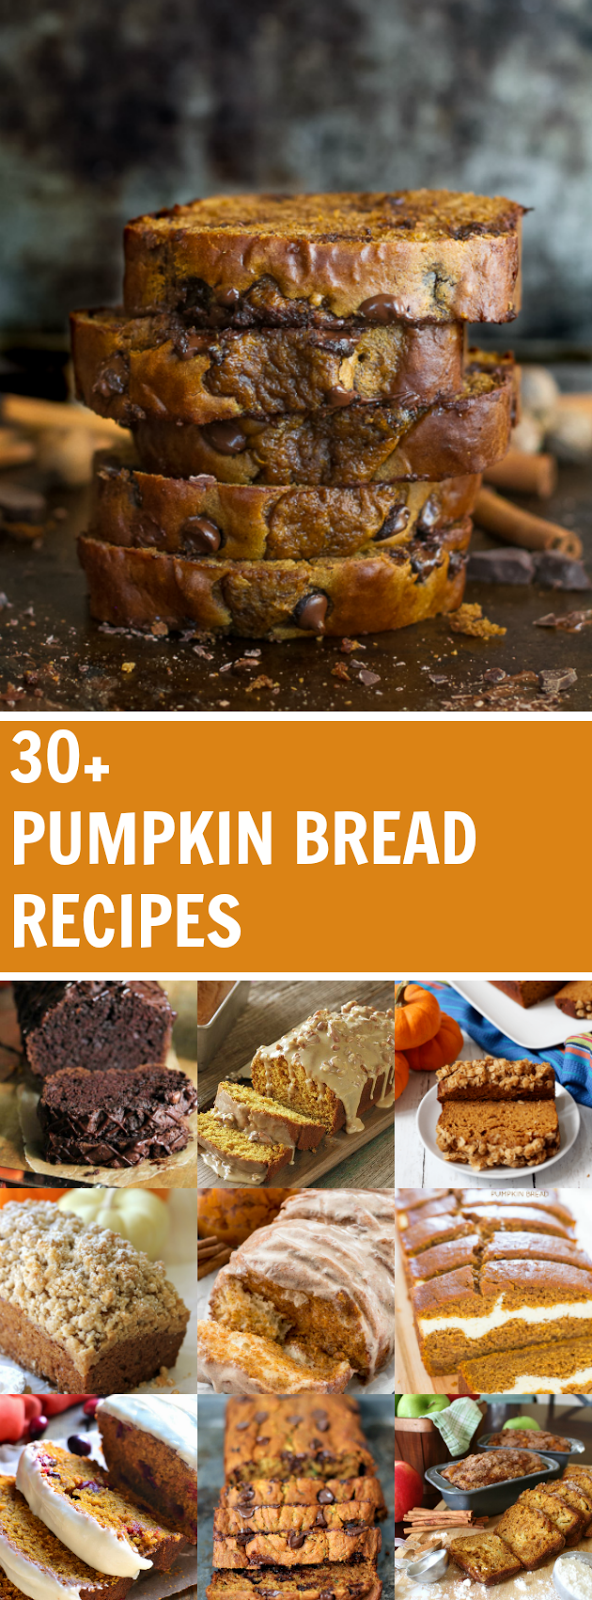 More than 30 delicious recipes for pumpkin bread including Pumpkin Cranberry Bread, Triple Chocolate Pumpkin Bread, and Cream Cheese Filled Pumpkin Bread!